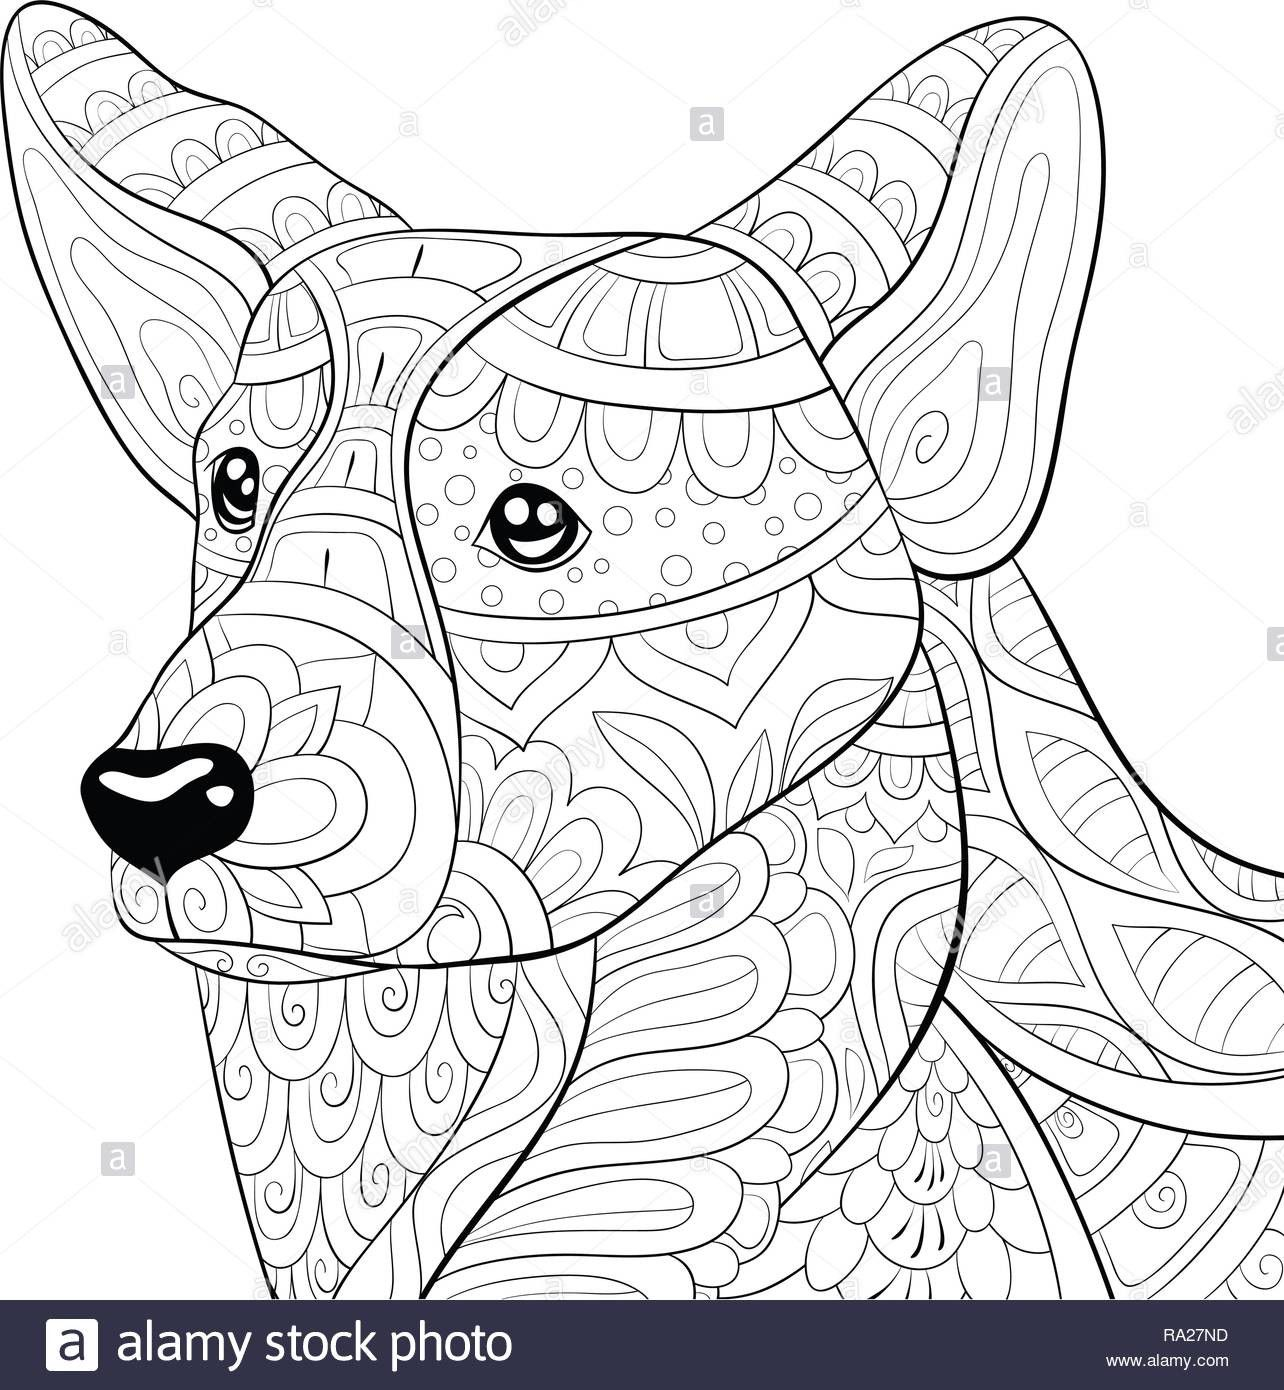 4 Worksheet Dog Coloring Pages To Print A Cute Dog With Ornaments Image For Relaxing Activity Dog Coloring Page Animal Coloring Books Dog Coloring Book